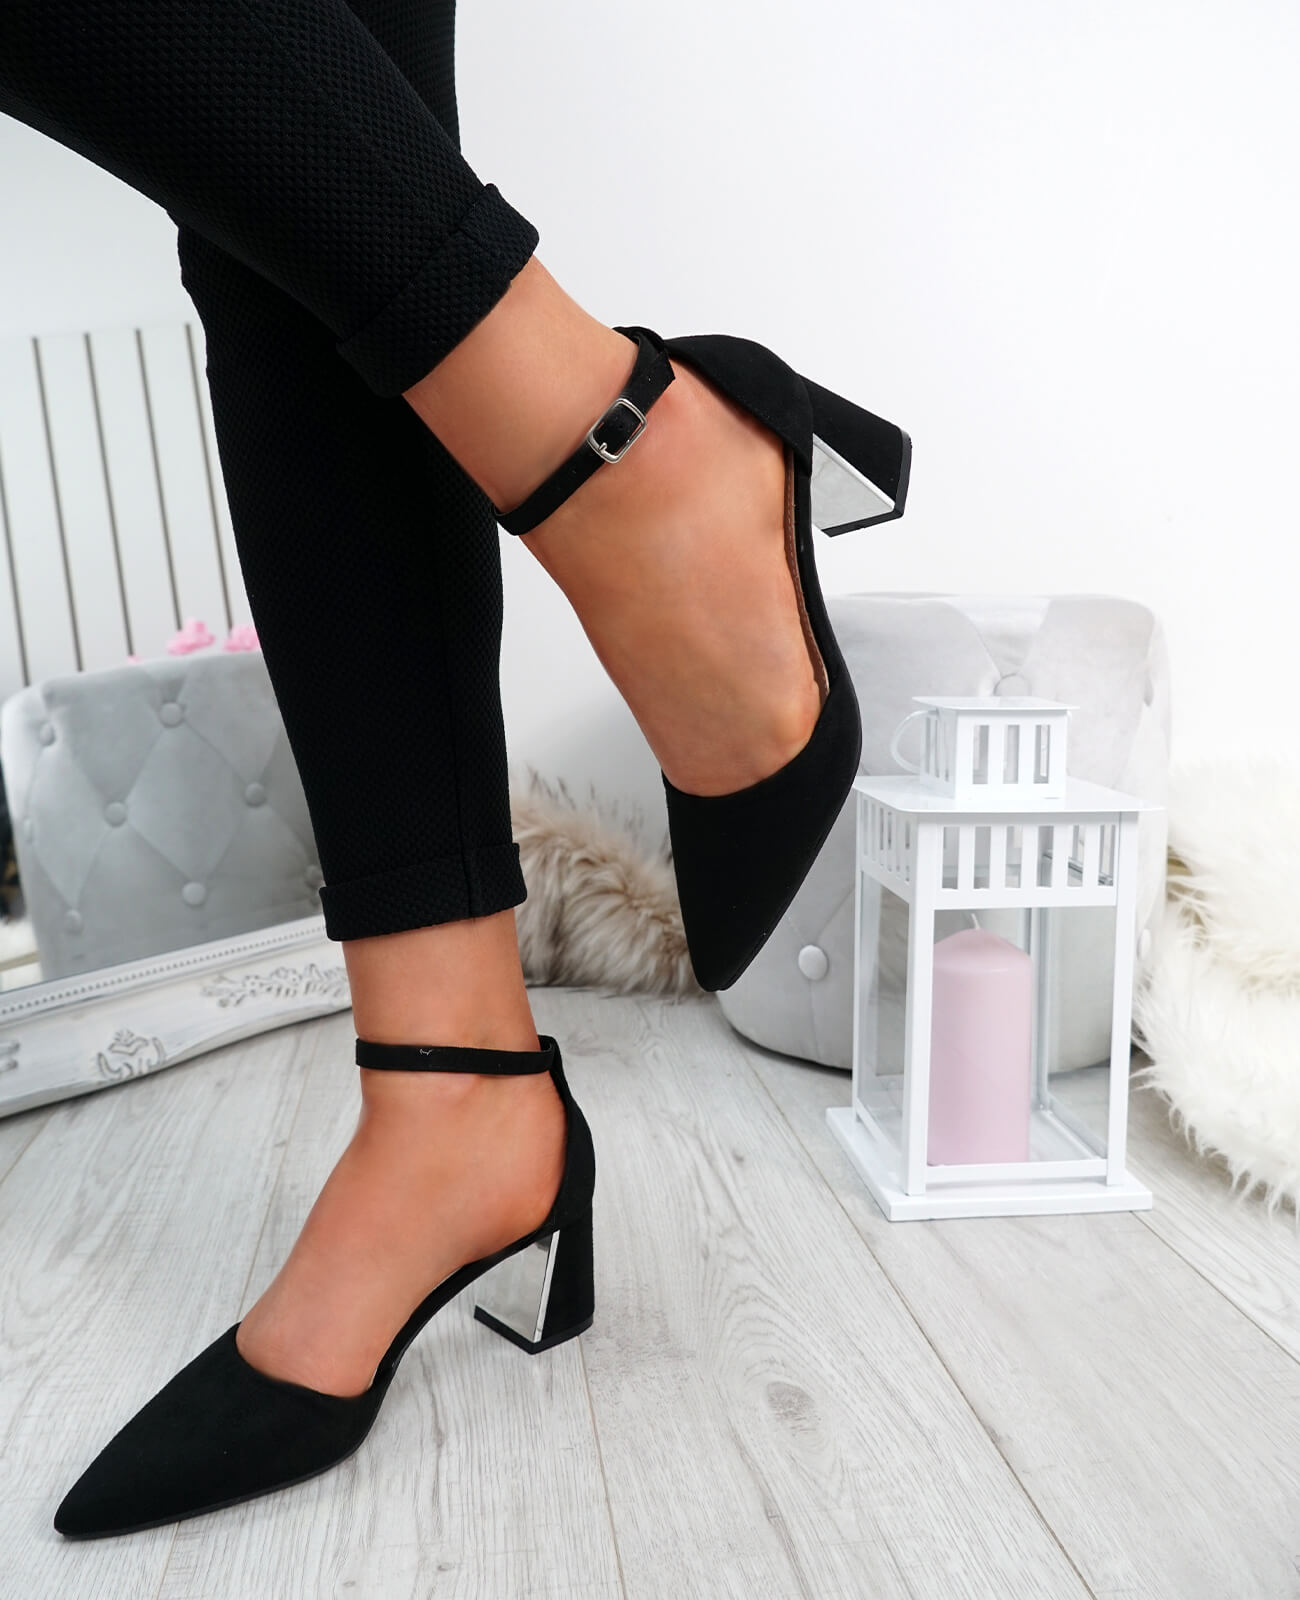 WOMENS-LADIES-ANKLE-STRAP-POINTED-HIGH-BLOCK-HEEL-PUMPS-COURT-SHOES-SIZE thumbnail 8